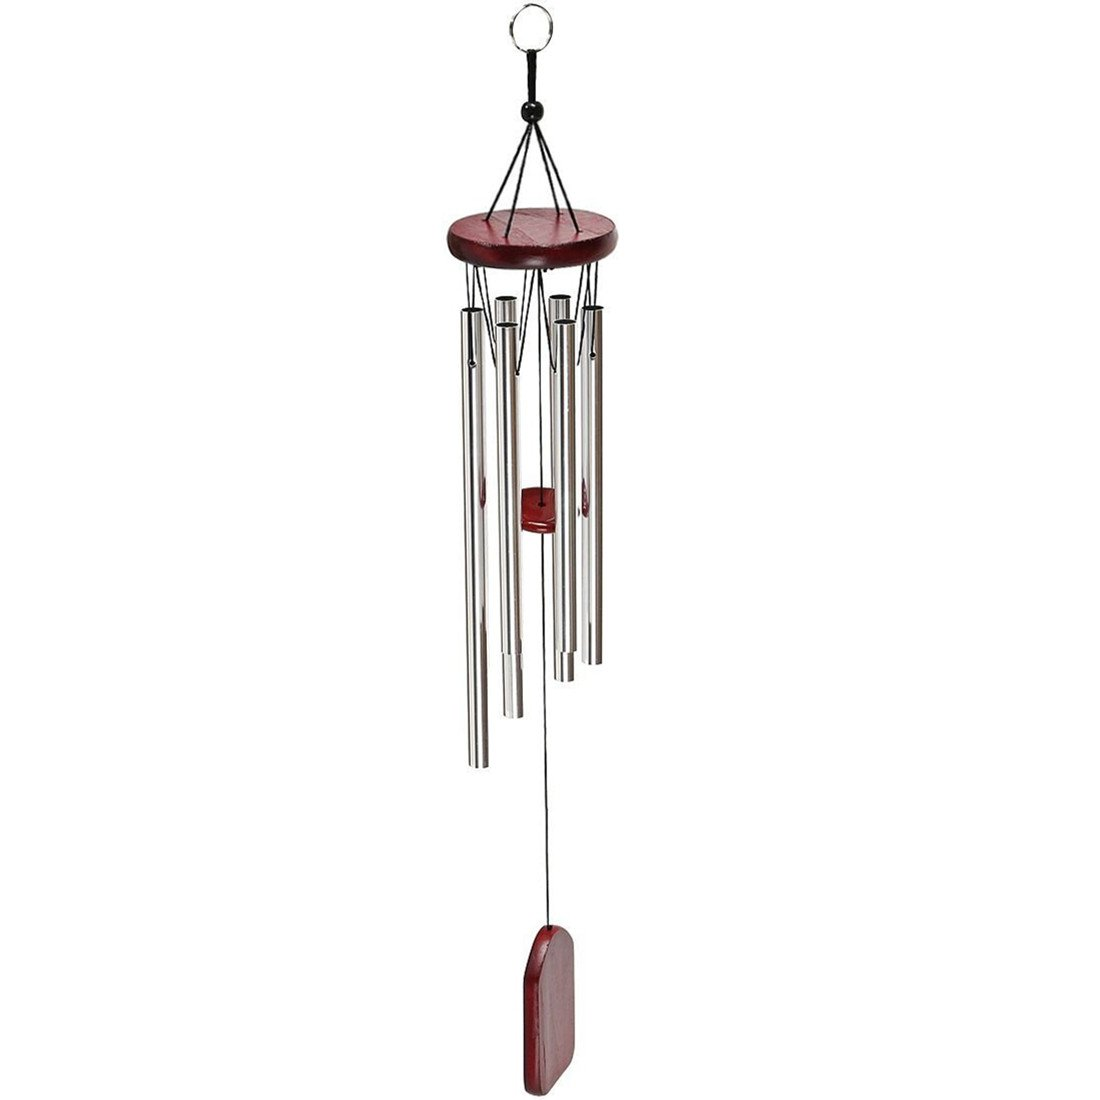 Wind Chime, MOHOO Windchime Amazing Grace Wind Chimes Bells 6 Metal Tubes Outdoor for Garden, Yard,Patio and Home Decor